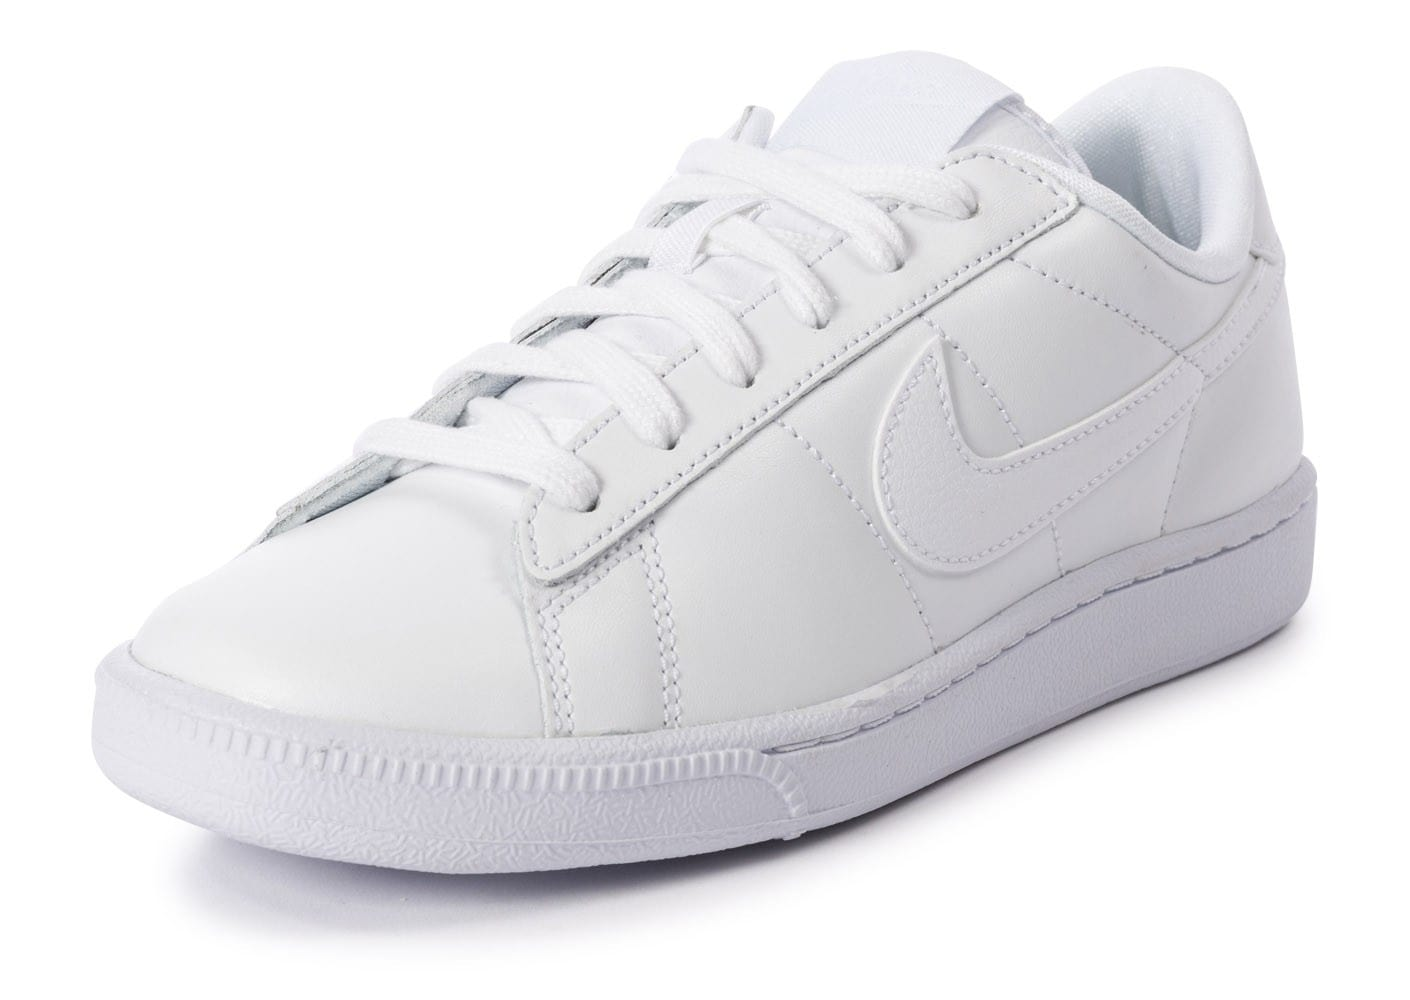 nike tennis classic blanche chaussures toutes les. Black Bedroom Furniture Sets. Home Design Ideas